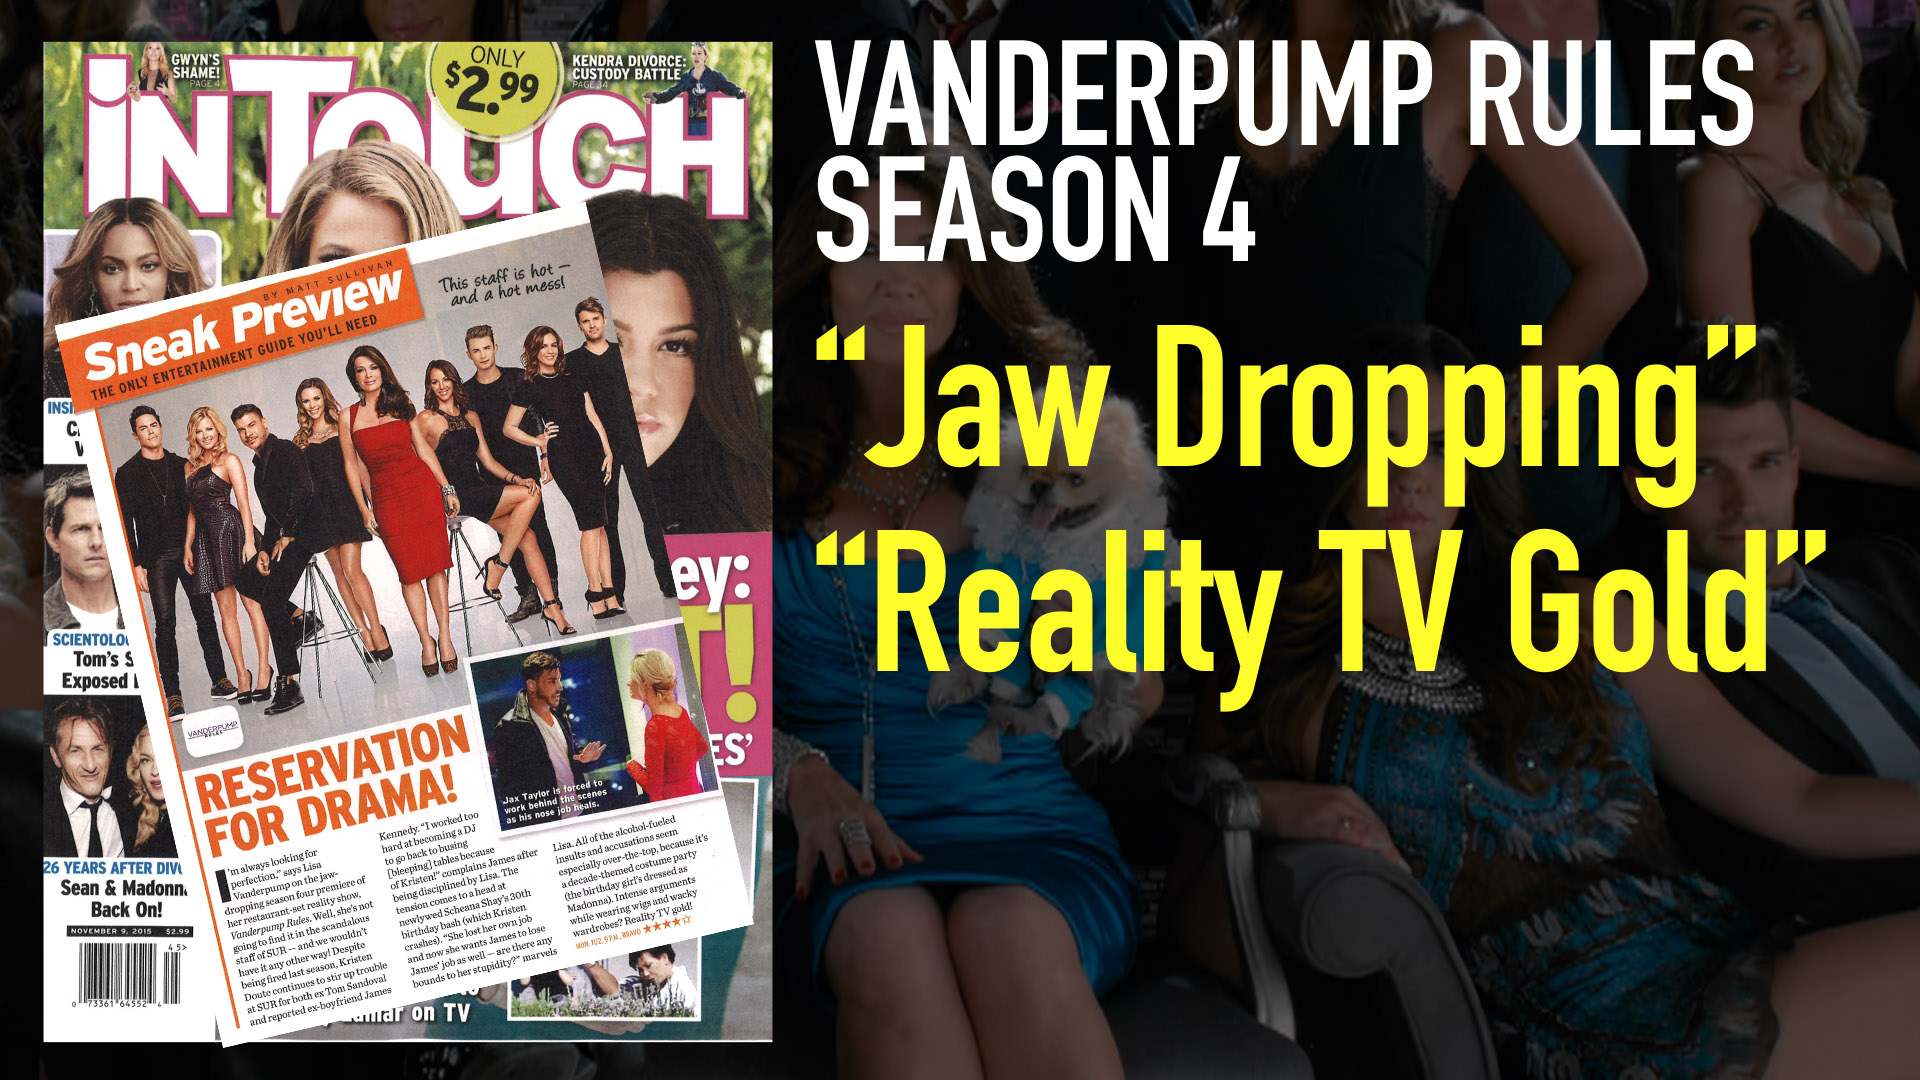 Vanderpump Rules Image